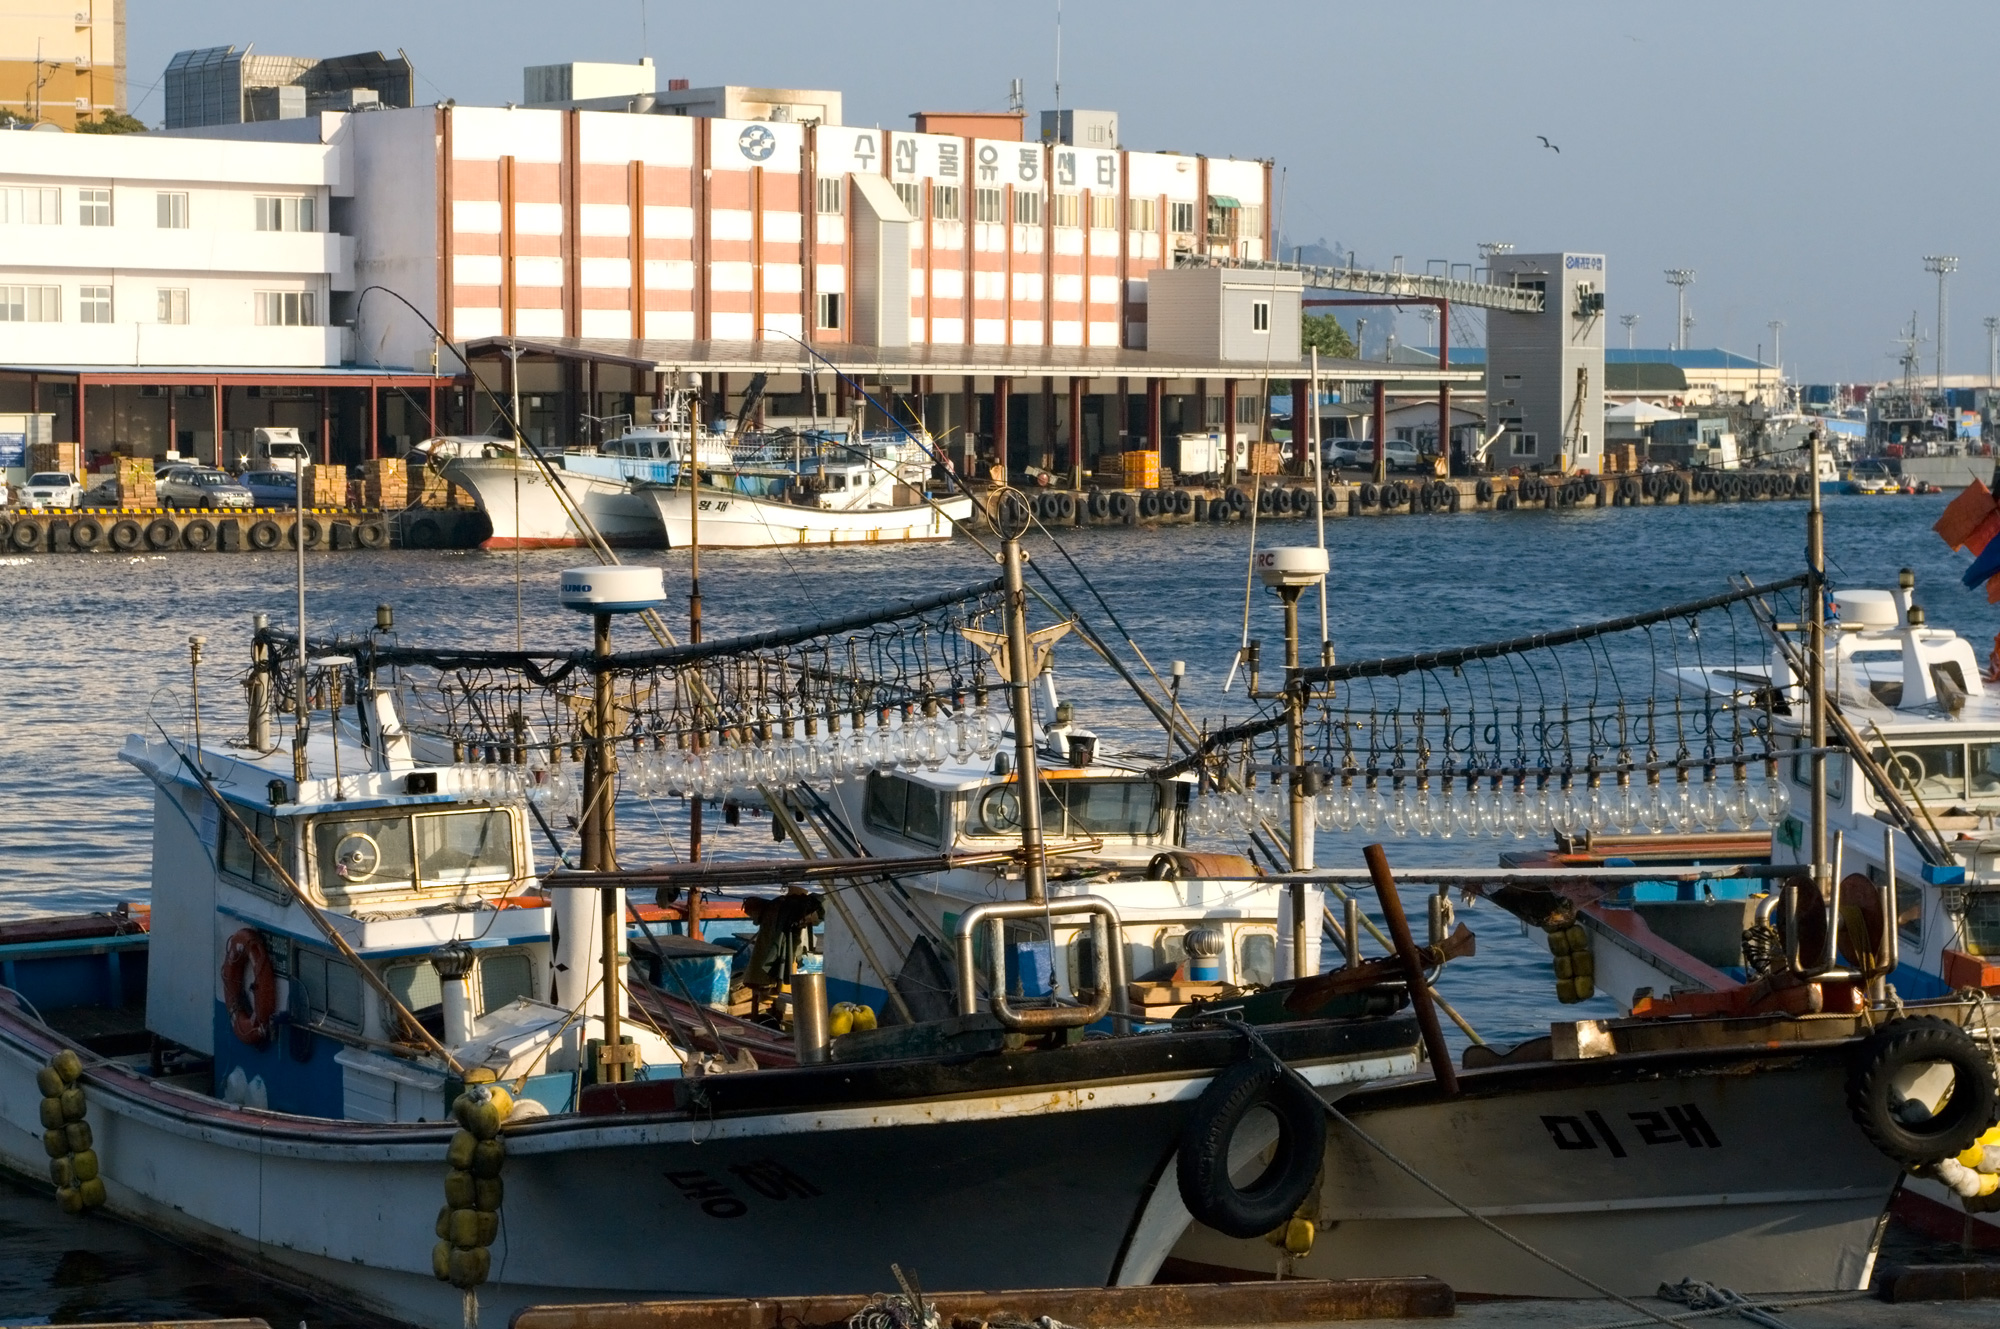 Image of squid jigger boat in Seogwipo City in Jeju. Medium sized vessel is docked with two long lines of electric lamps on deck, these electric lamps are used to attract squid at night. This vessel is similar to the squid jiggers used in the study.